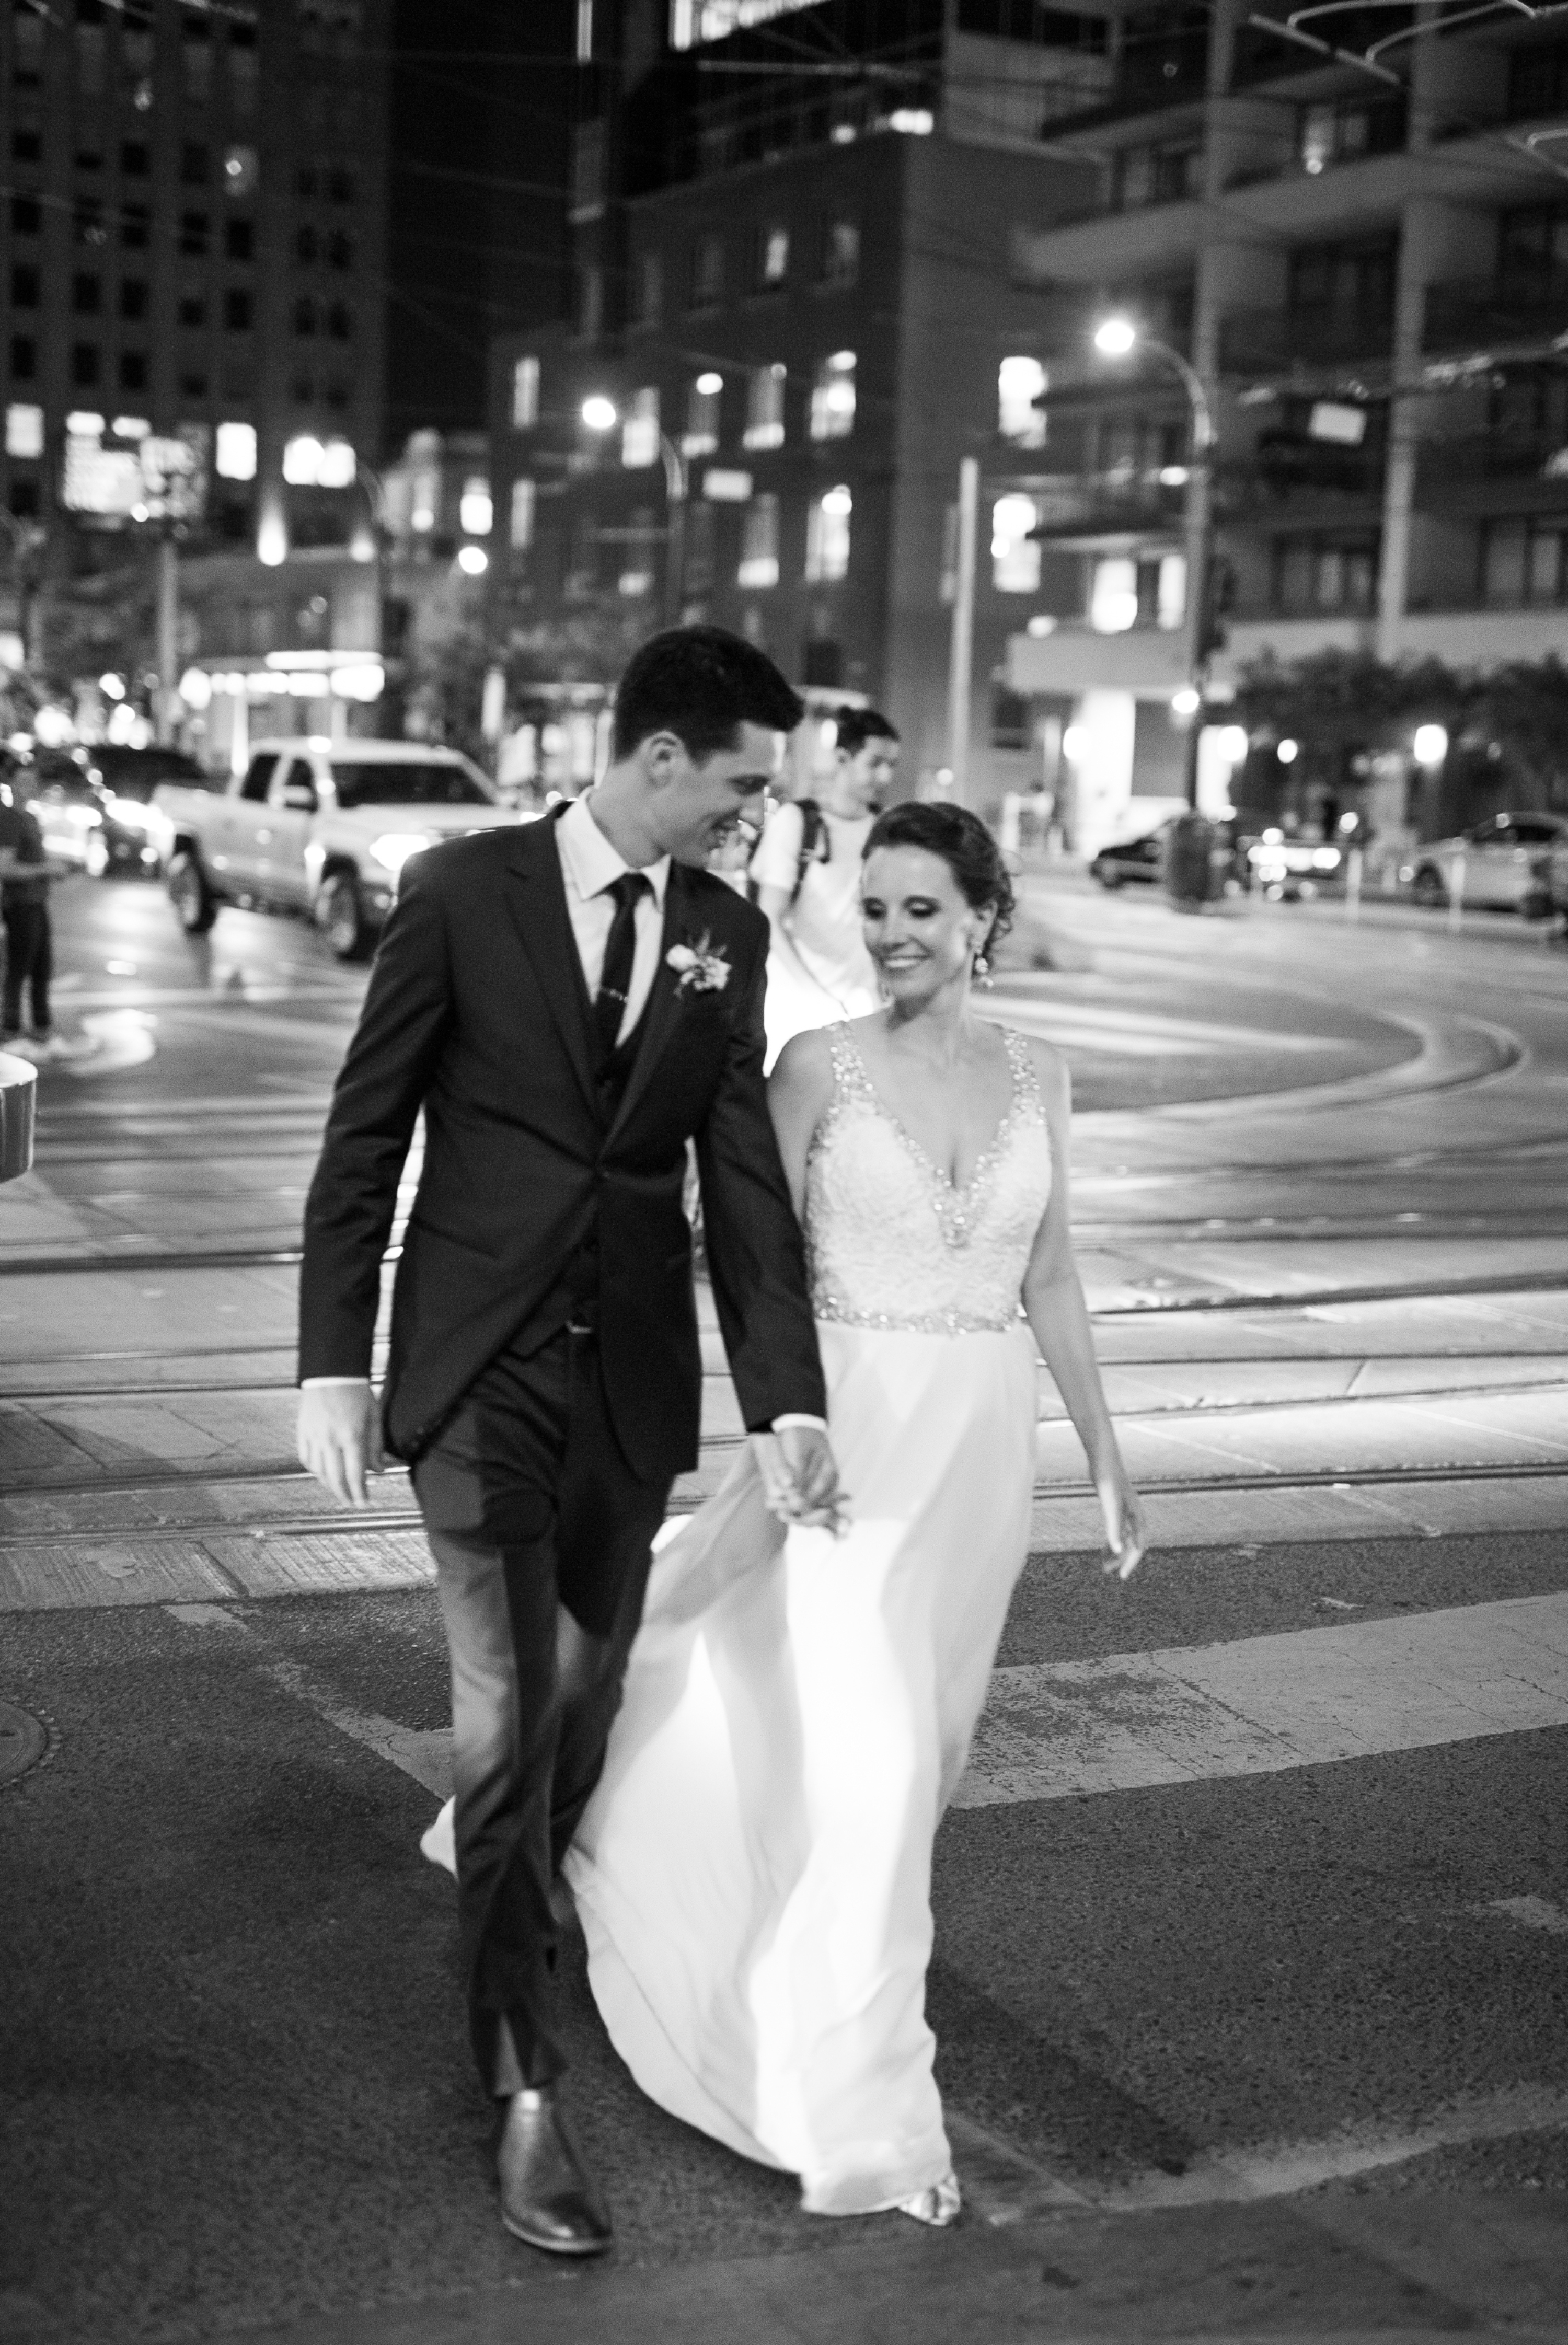 Night Photo Black and White Toronto Wedding 2nd Floor Events Zsuzsi Pal Photography